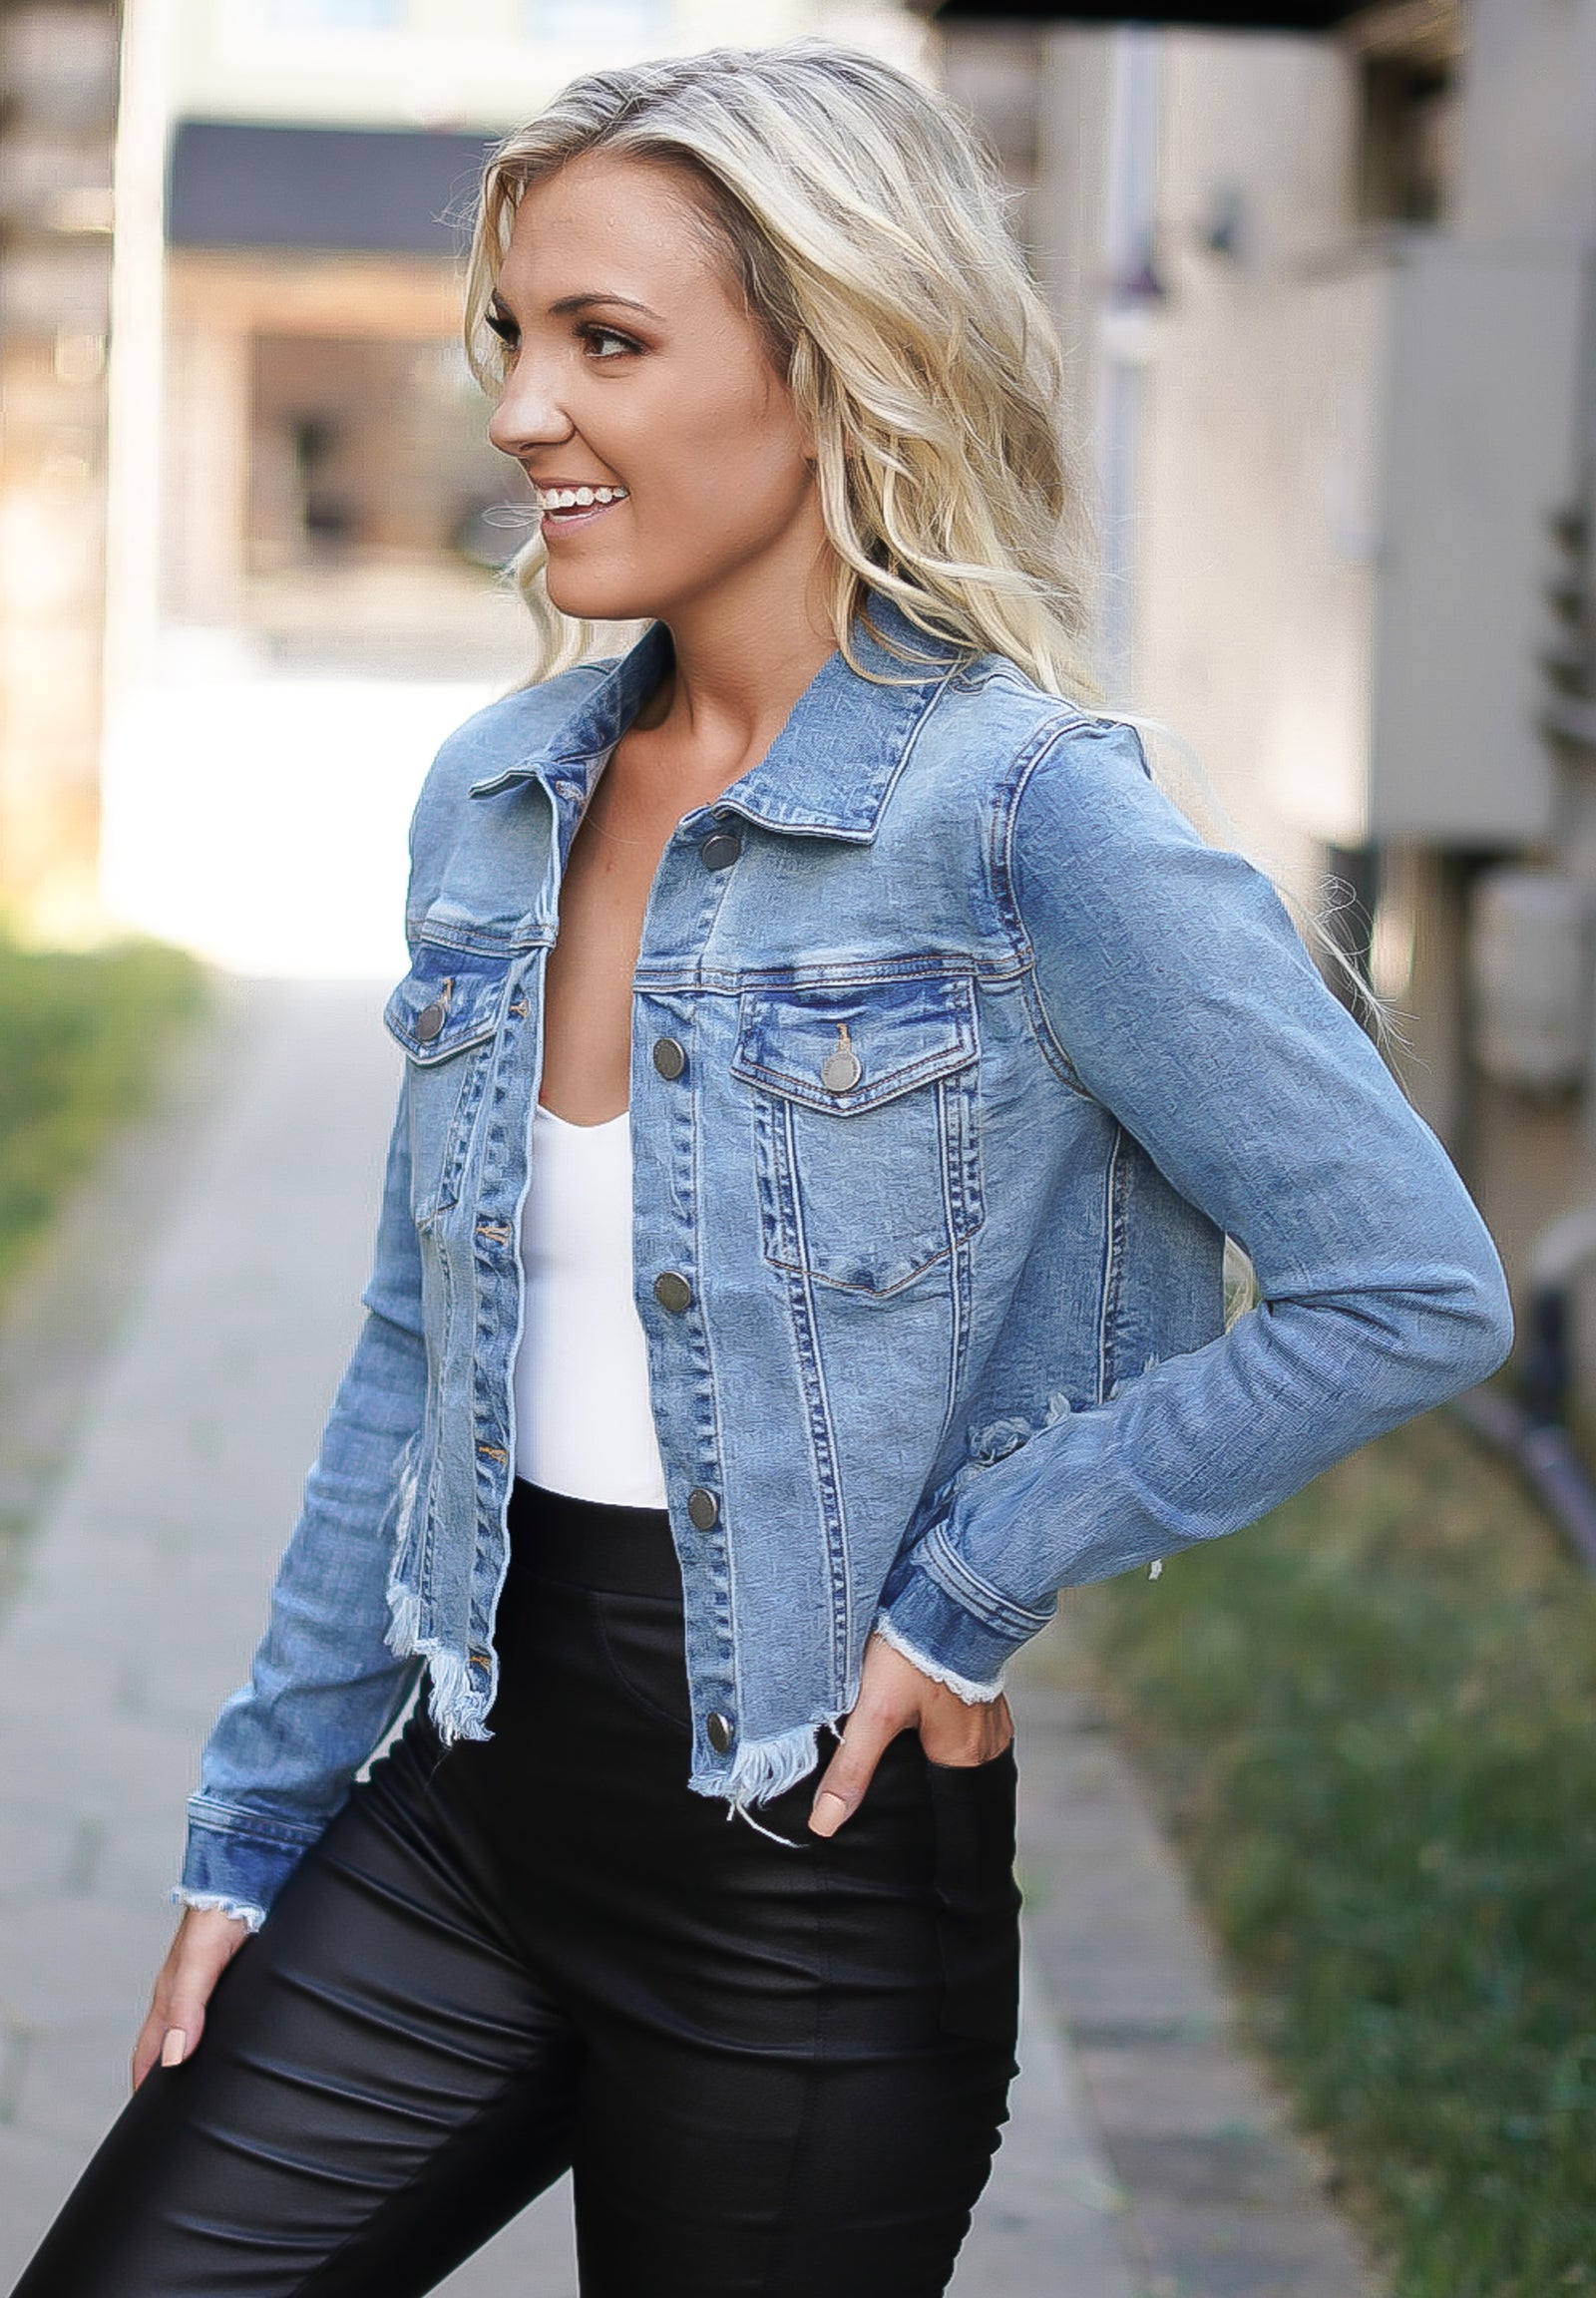 California Cropped Denim Jacket - Light Wash